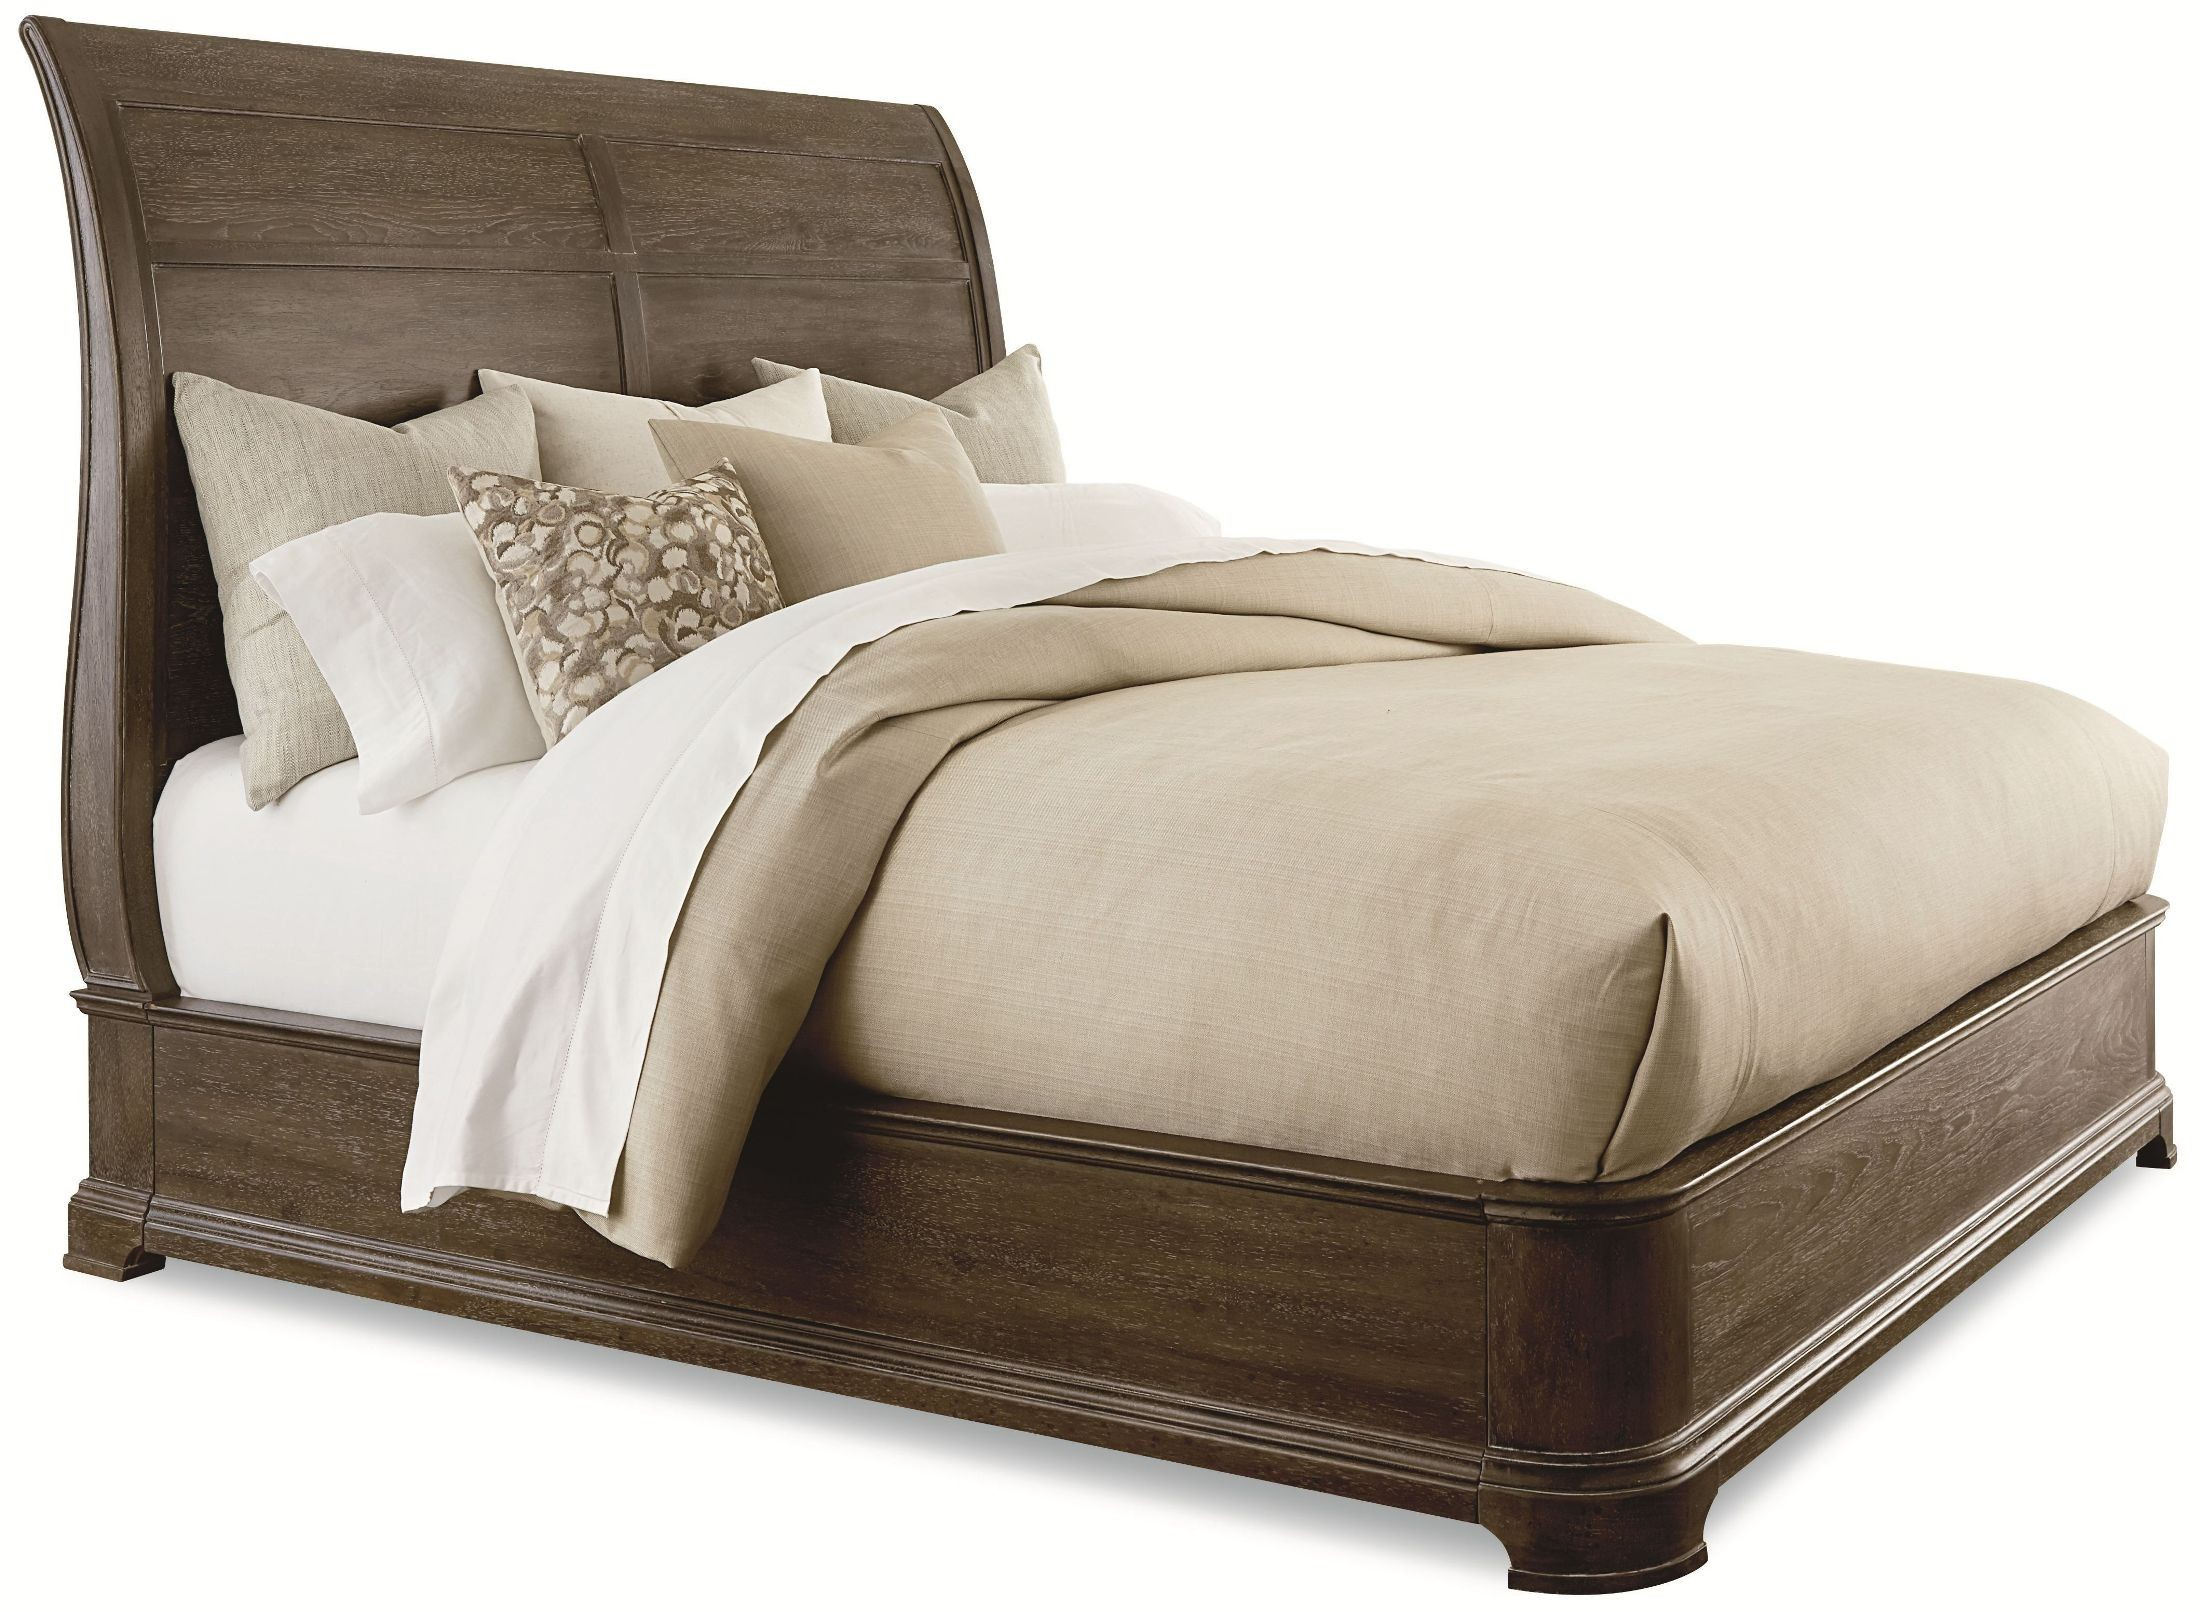 St Germain Queen Platform Sleigh Bed From Art Coleman